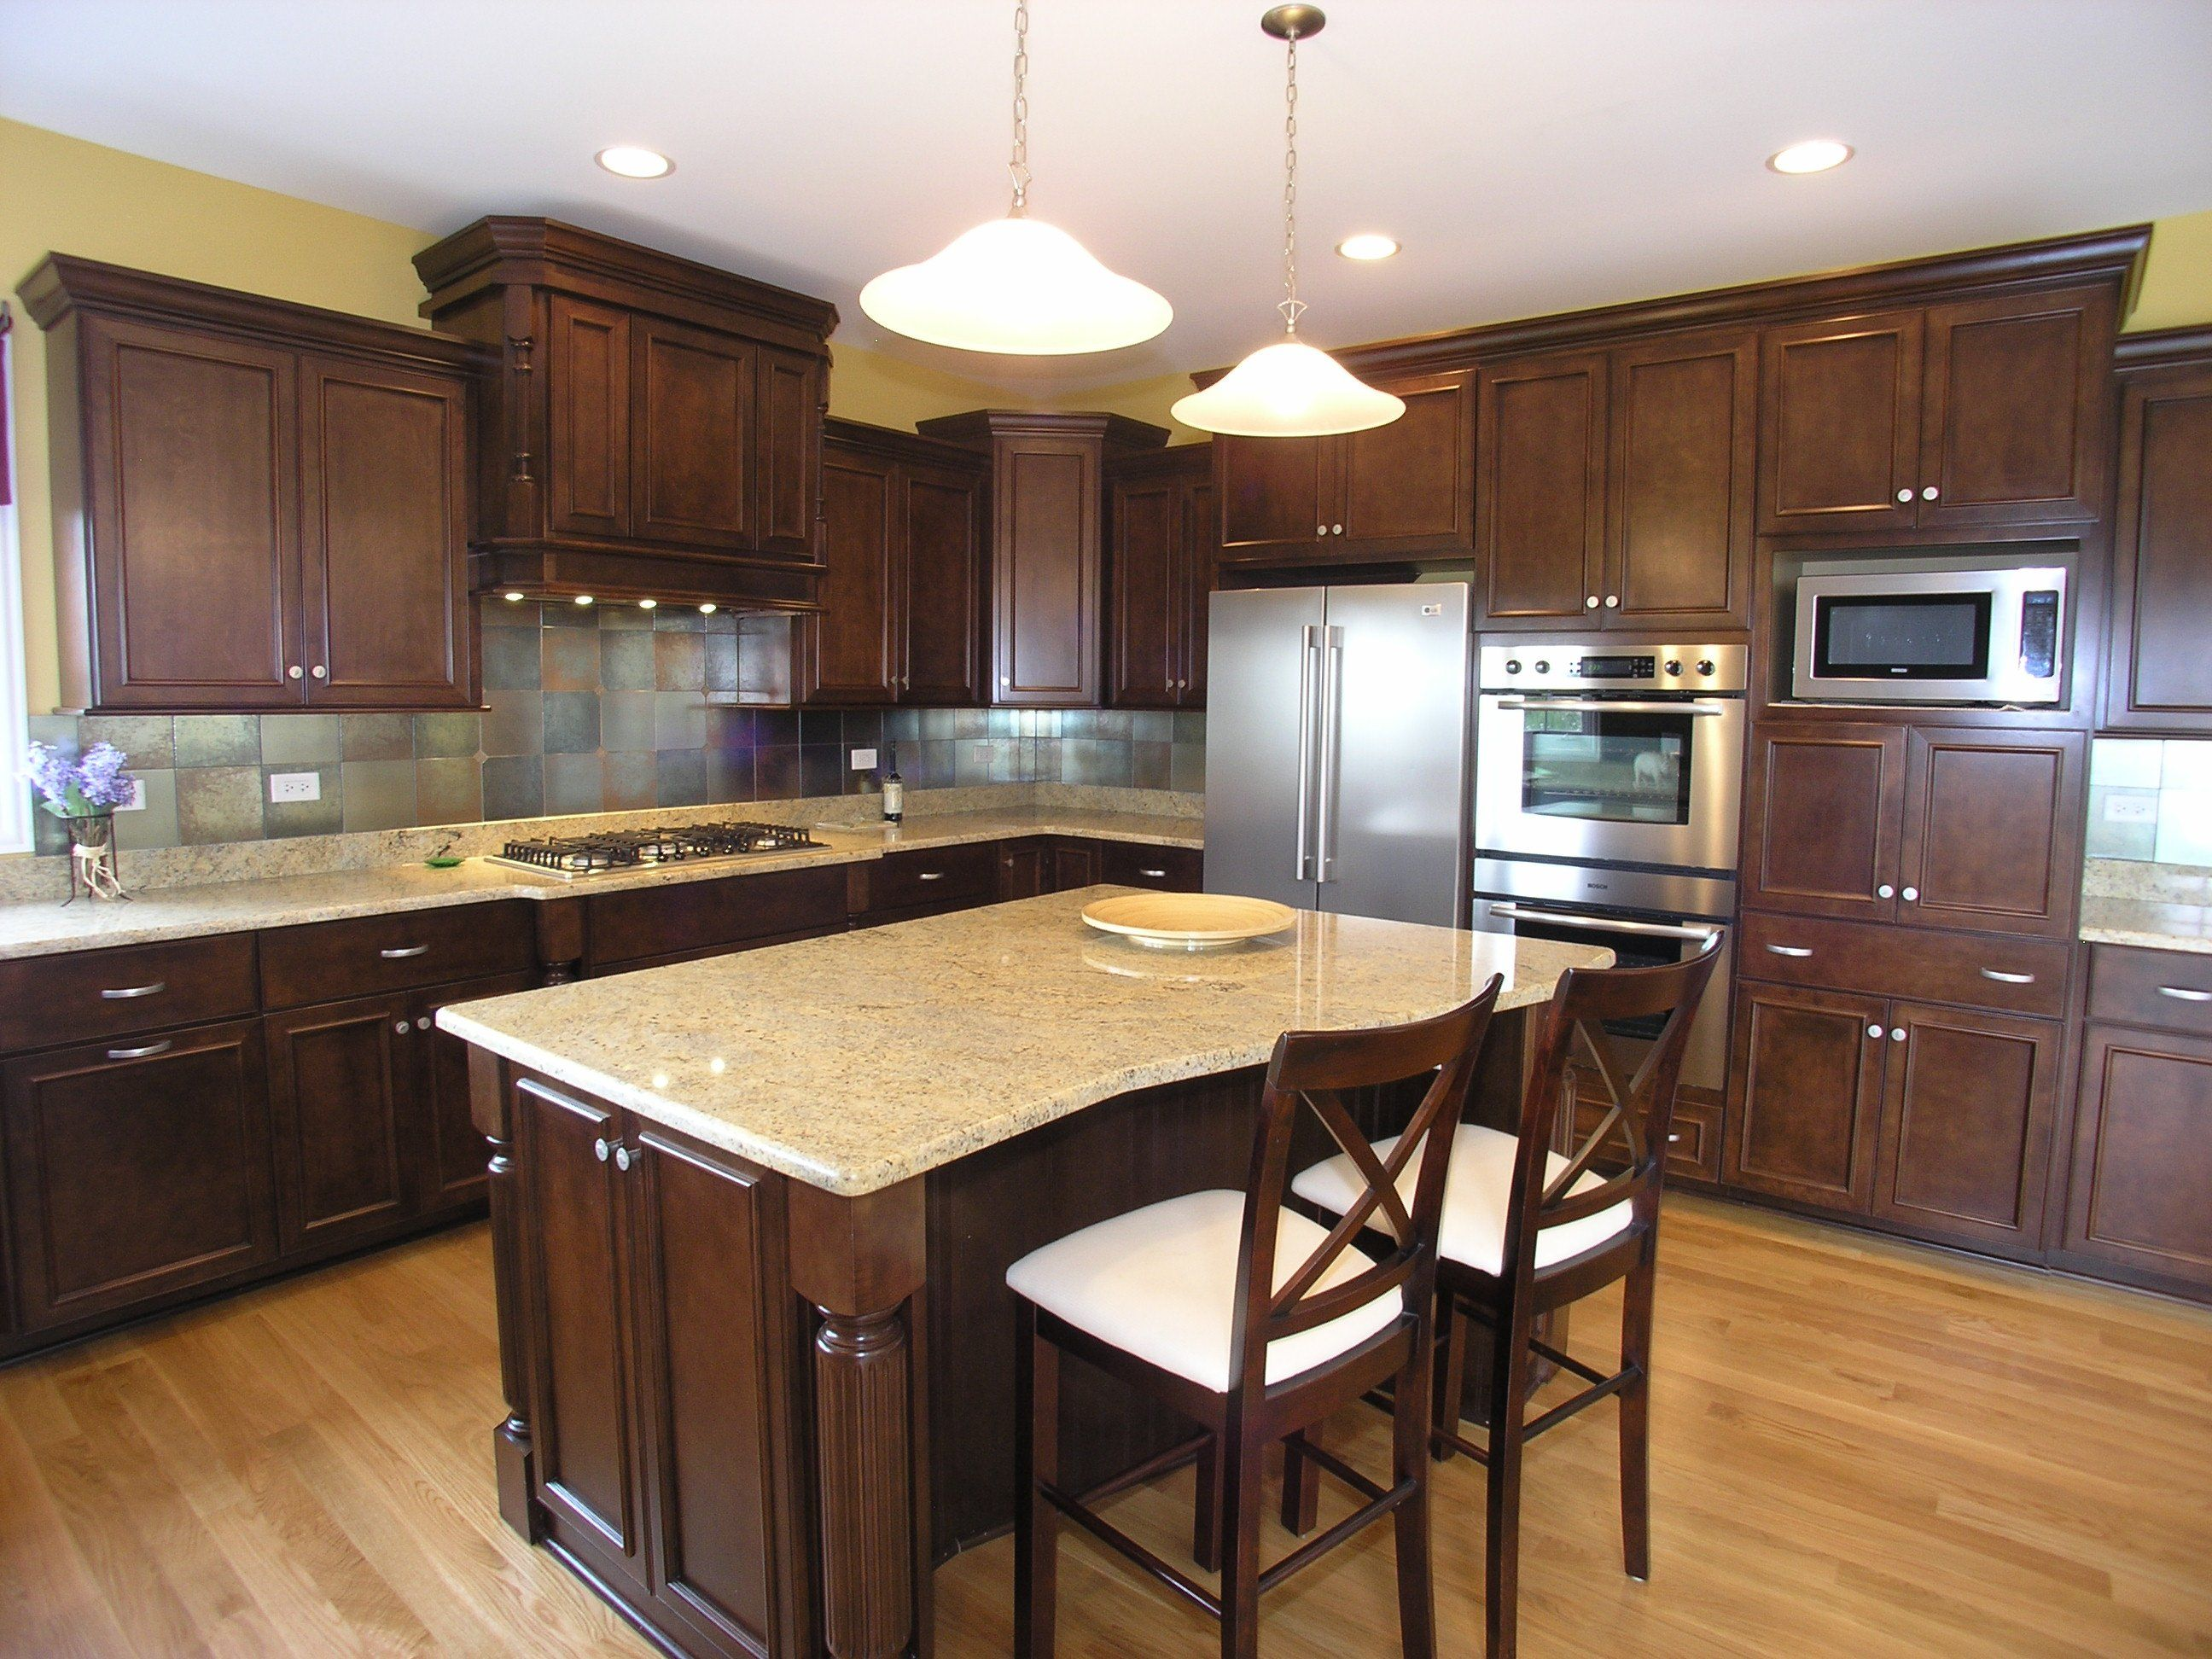 Like Color Of Dark Cabinets With Light Floor. Also Like Color Of Countertop  And Backsplash